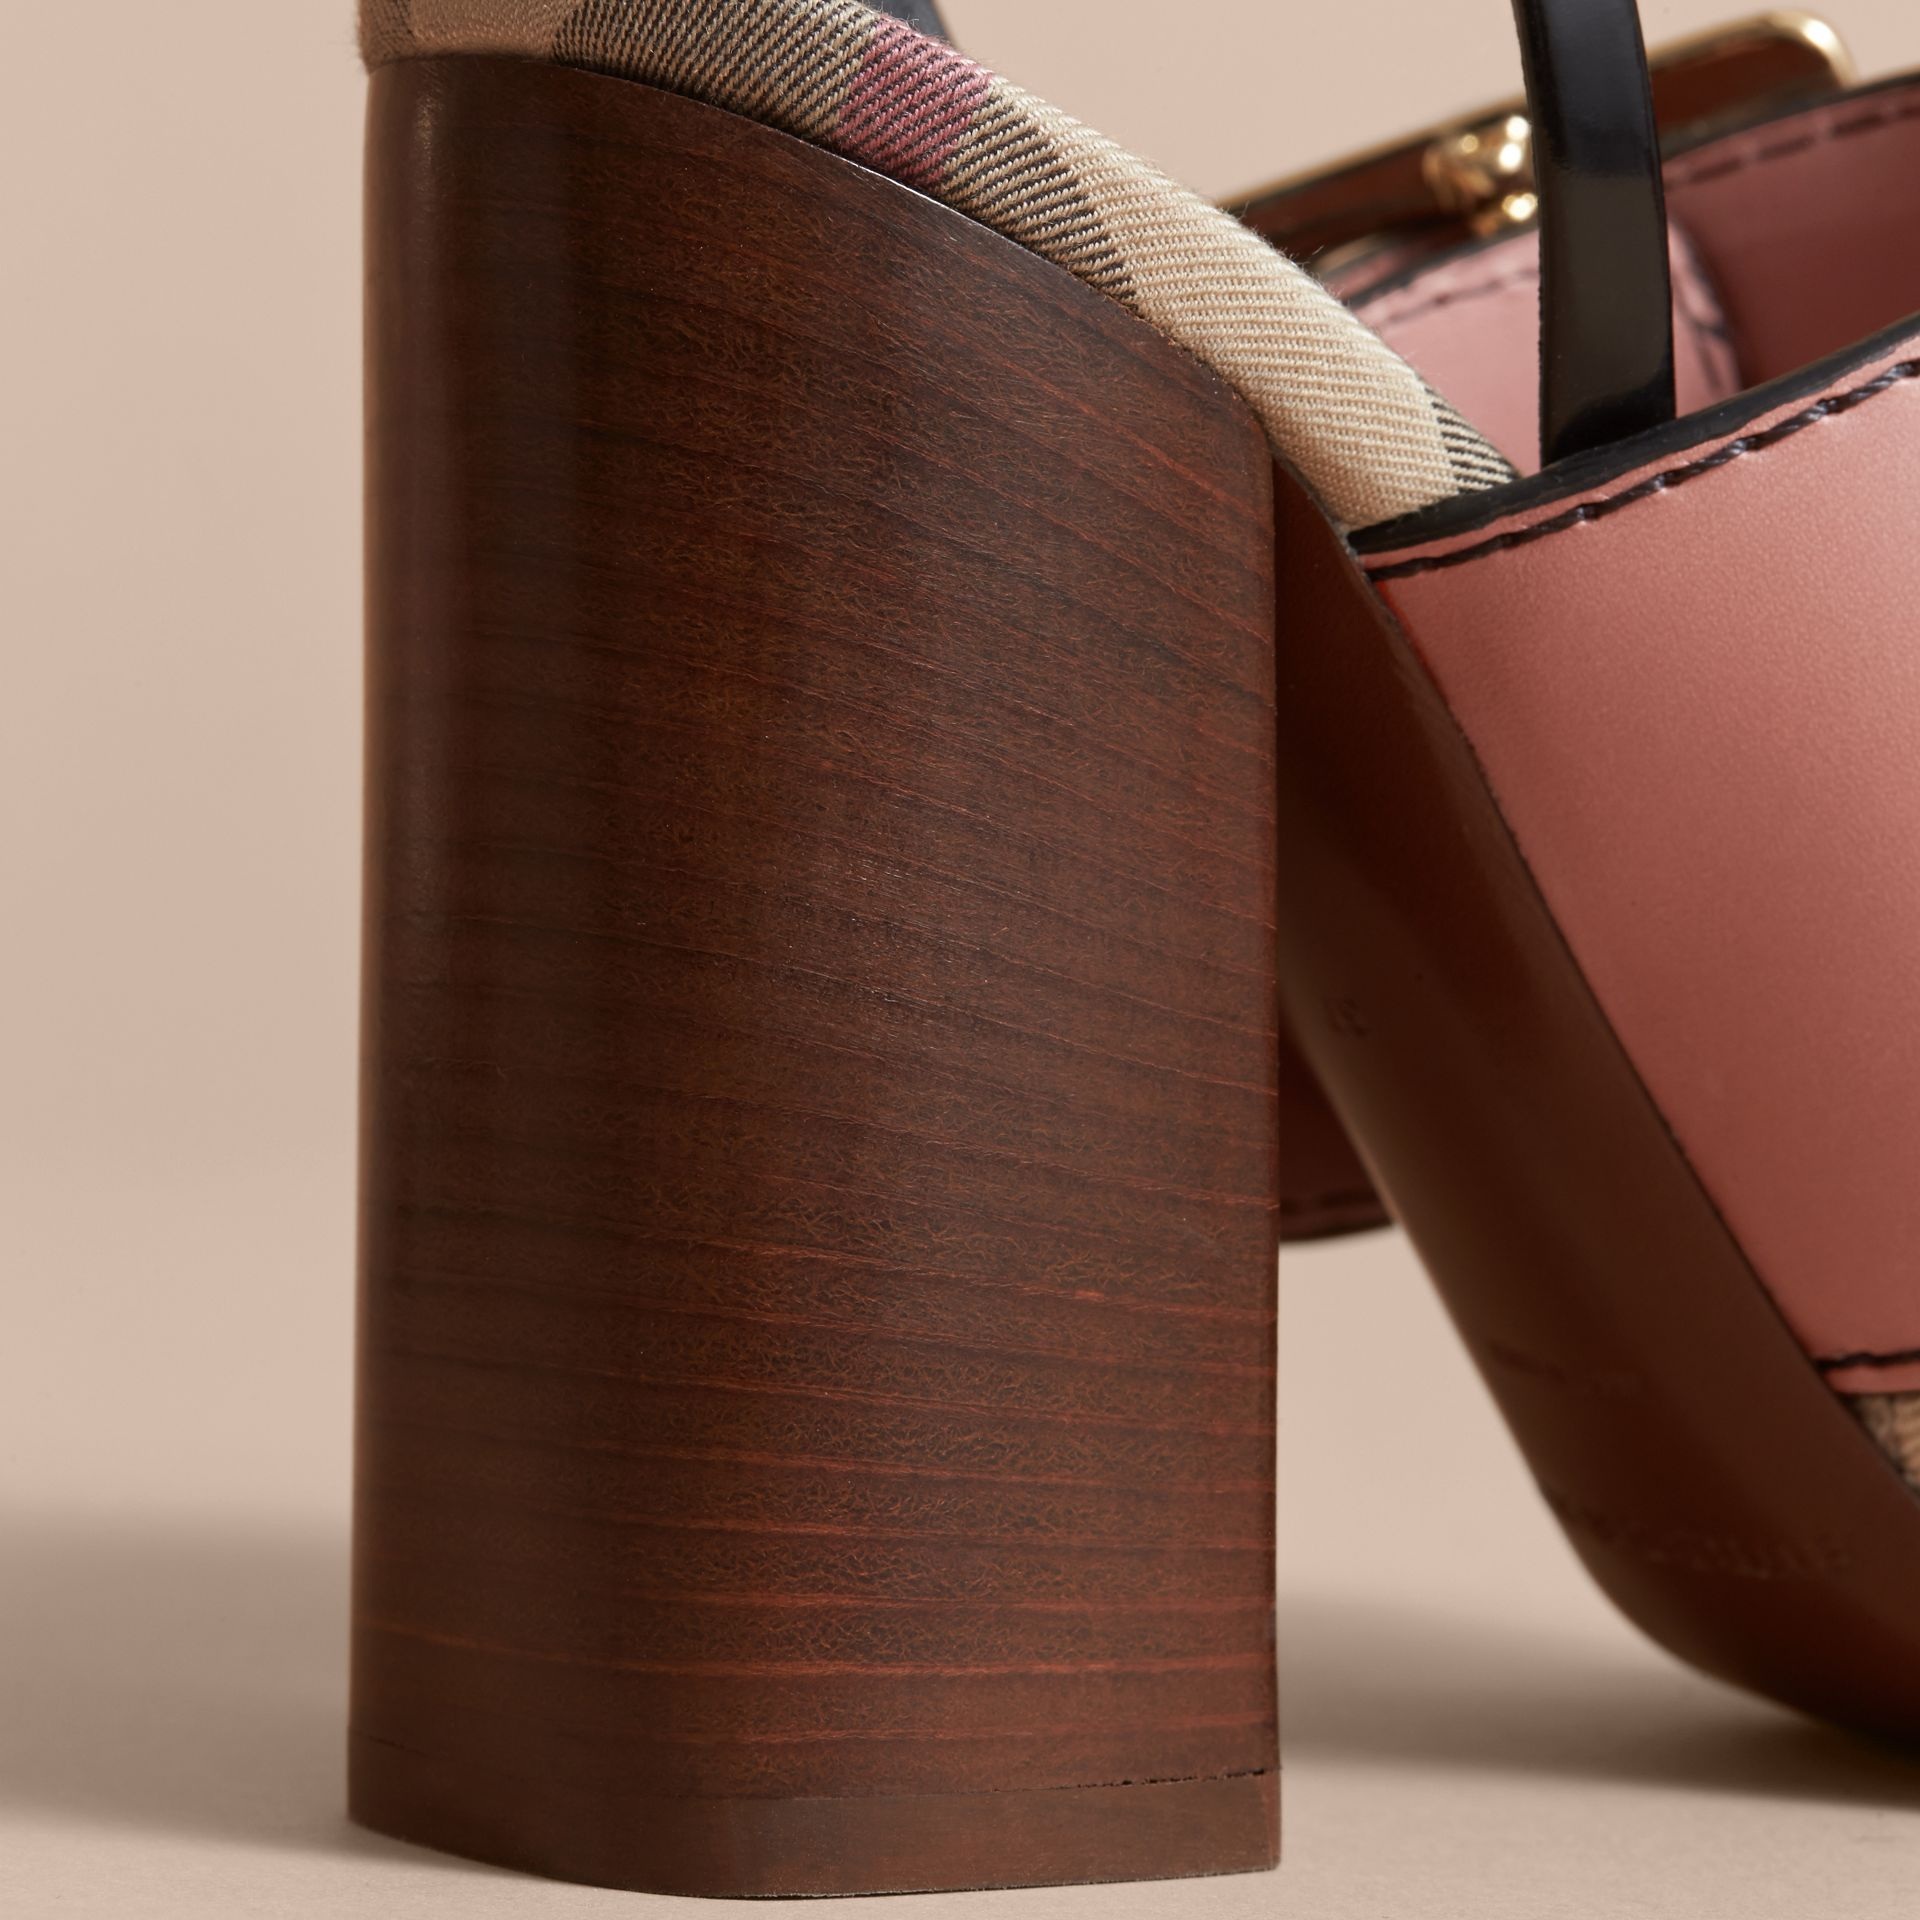 Buckle Detail Colour Block Leather Sandals in Nude Pink - Women | Burberry - gallery image 5